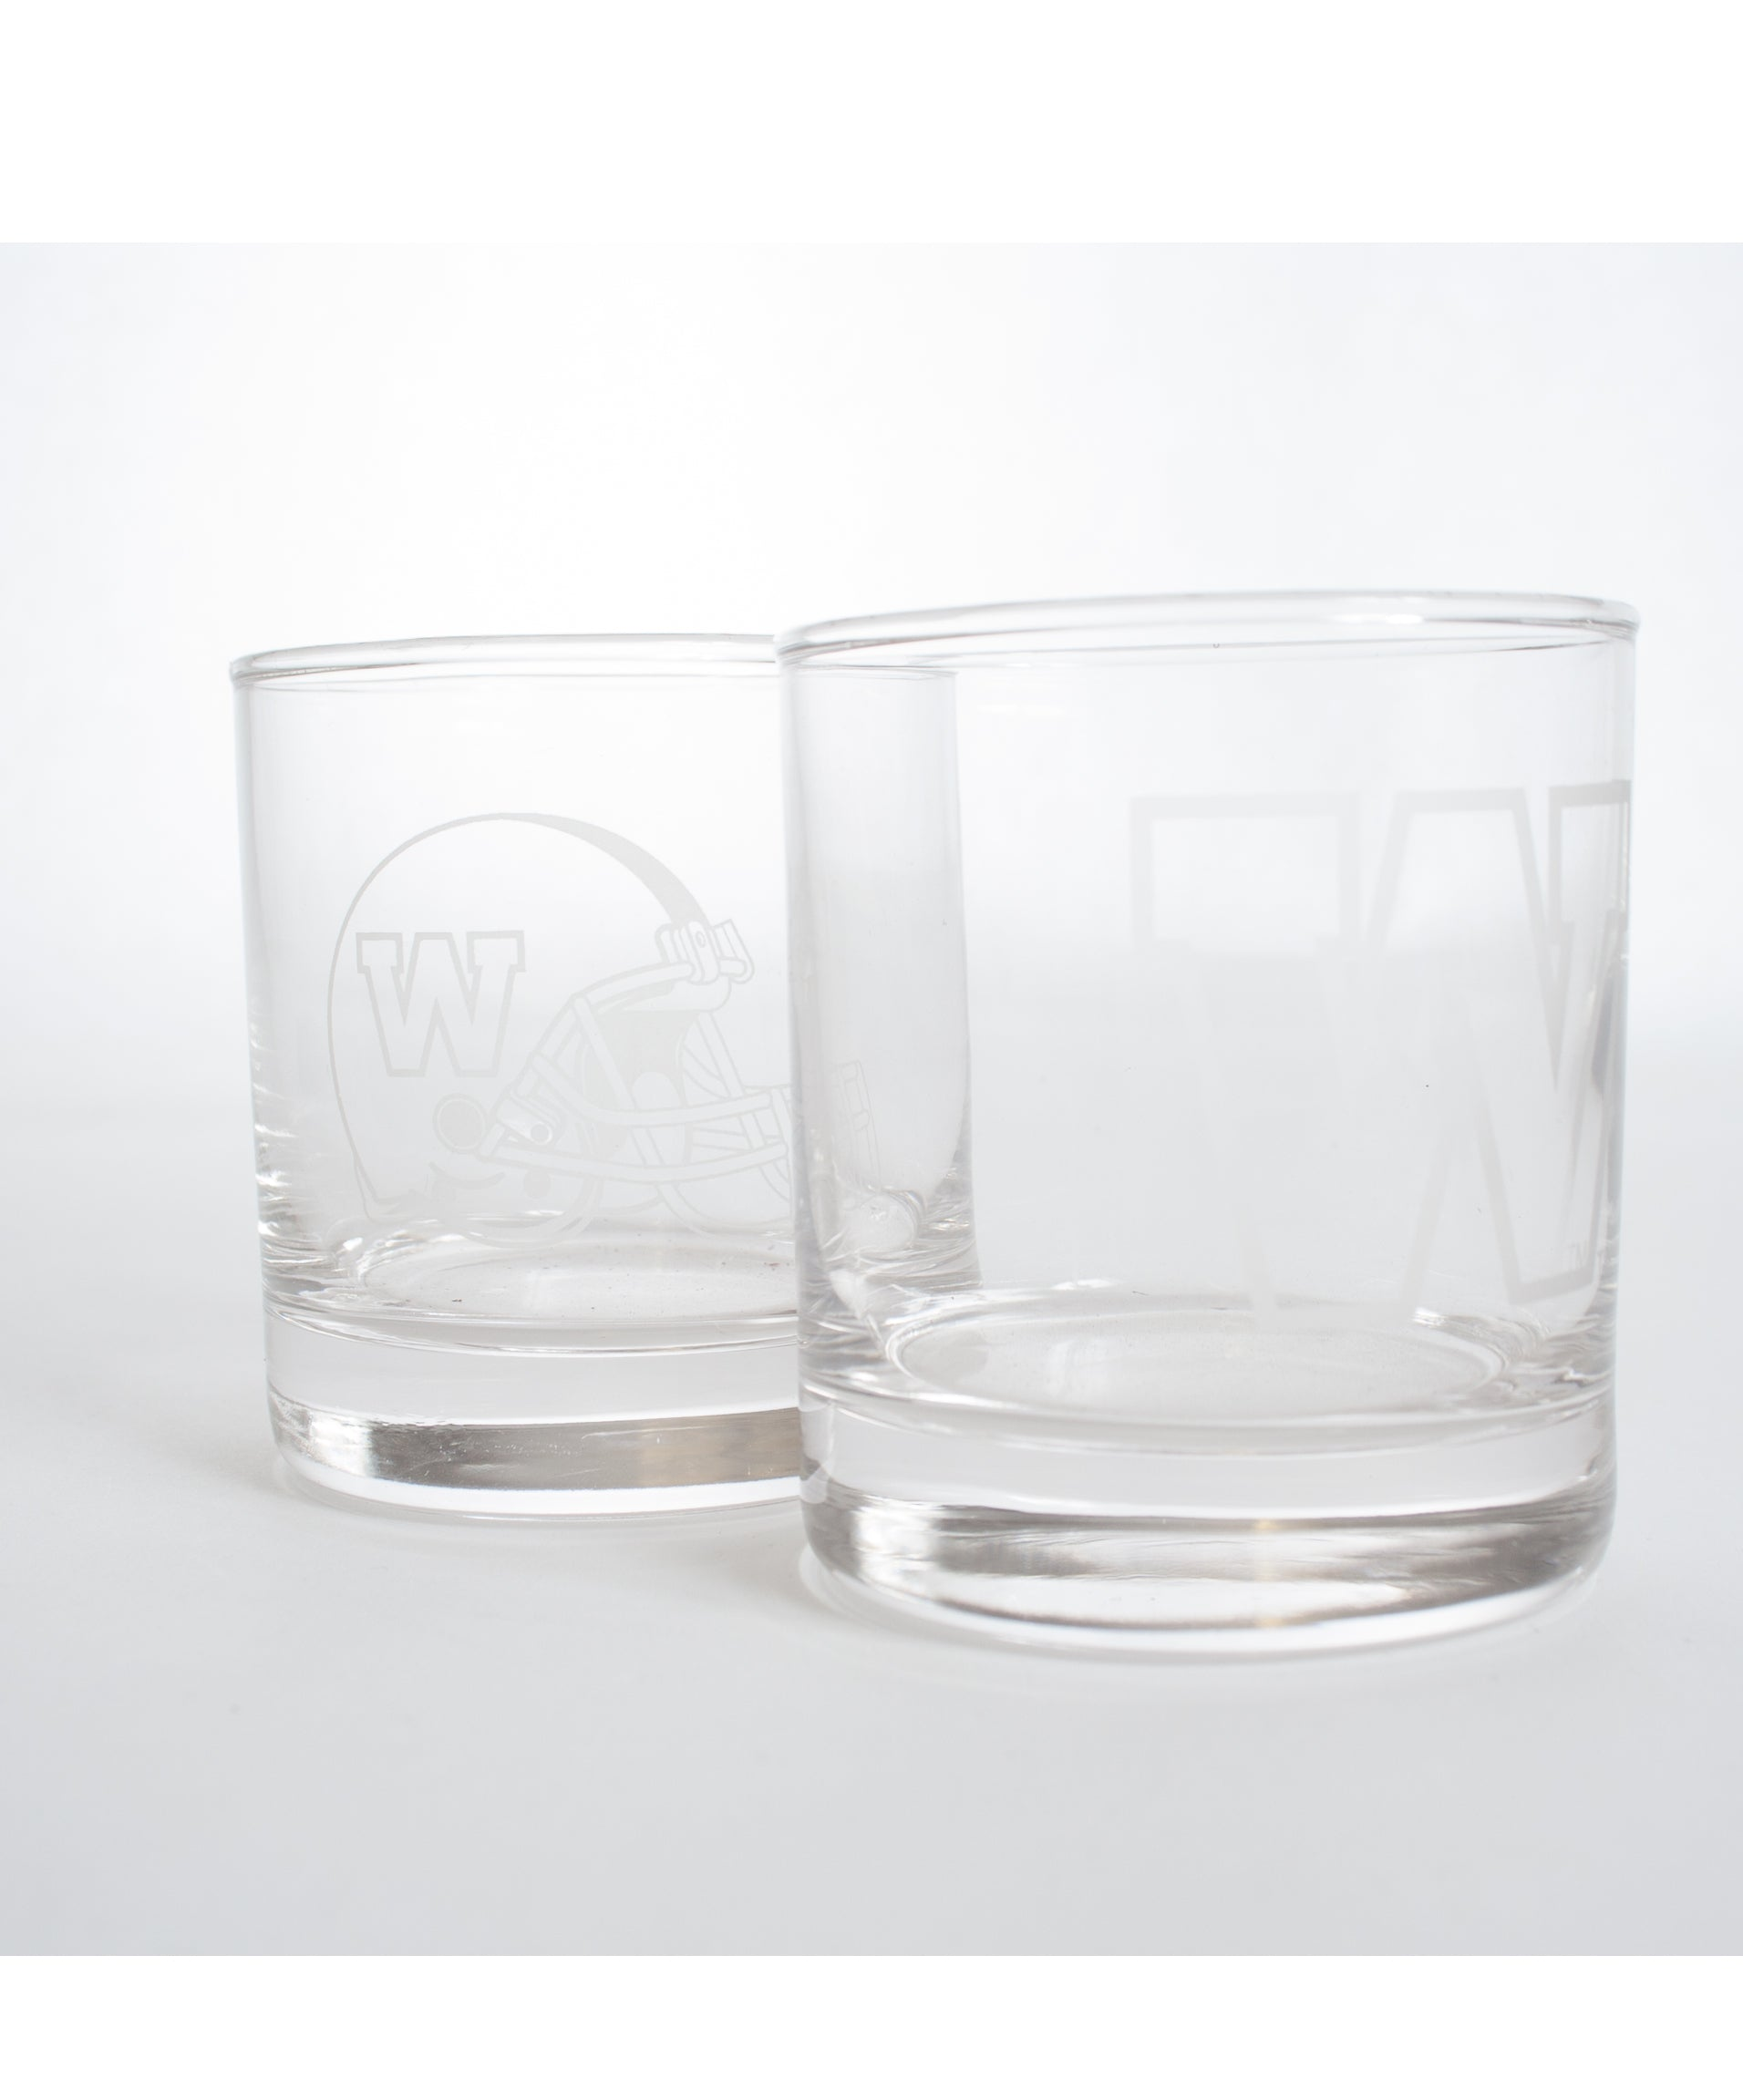 2 Piece Rocks Glass Set